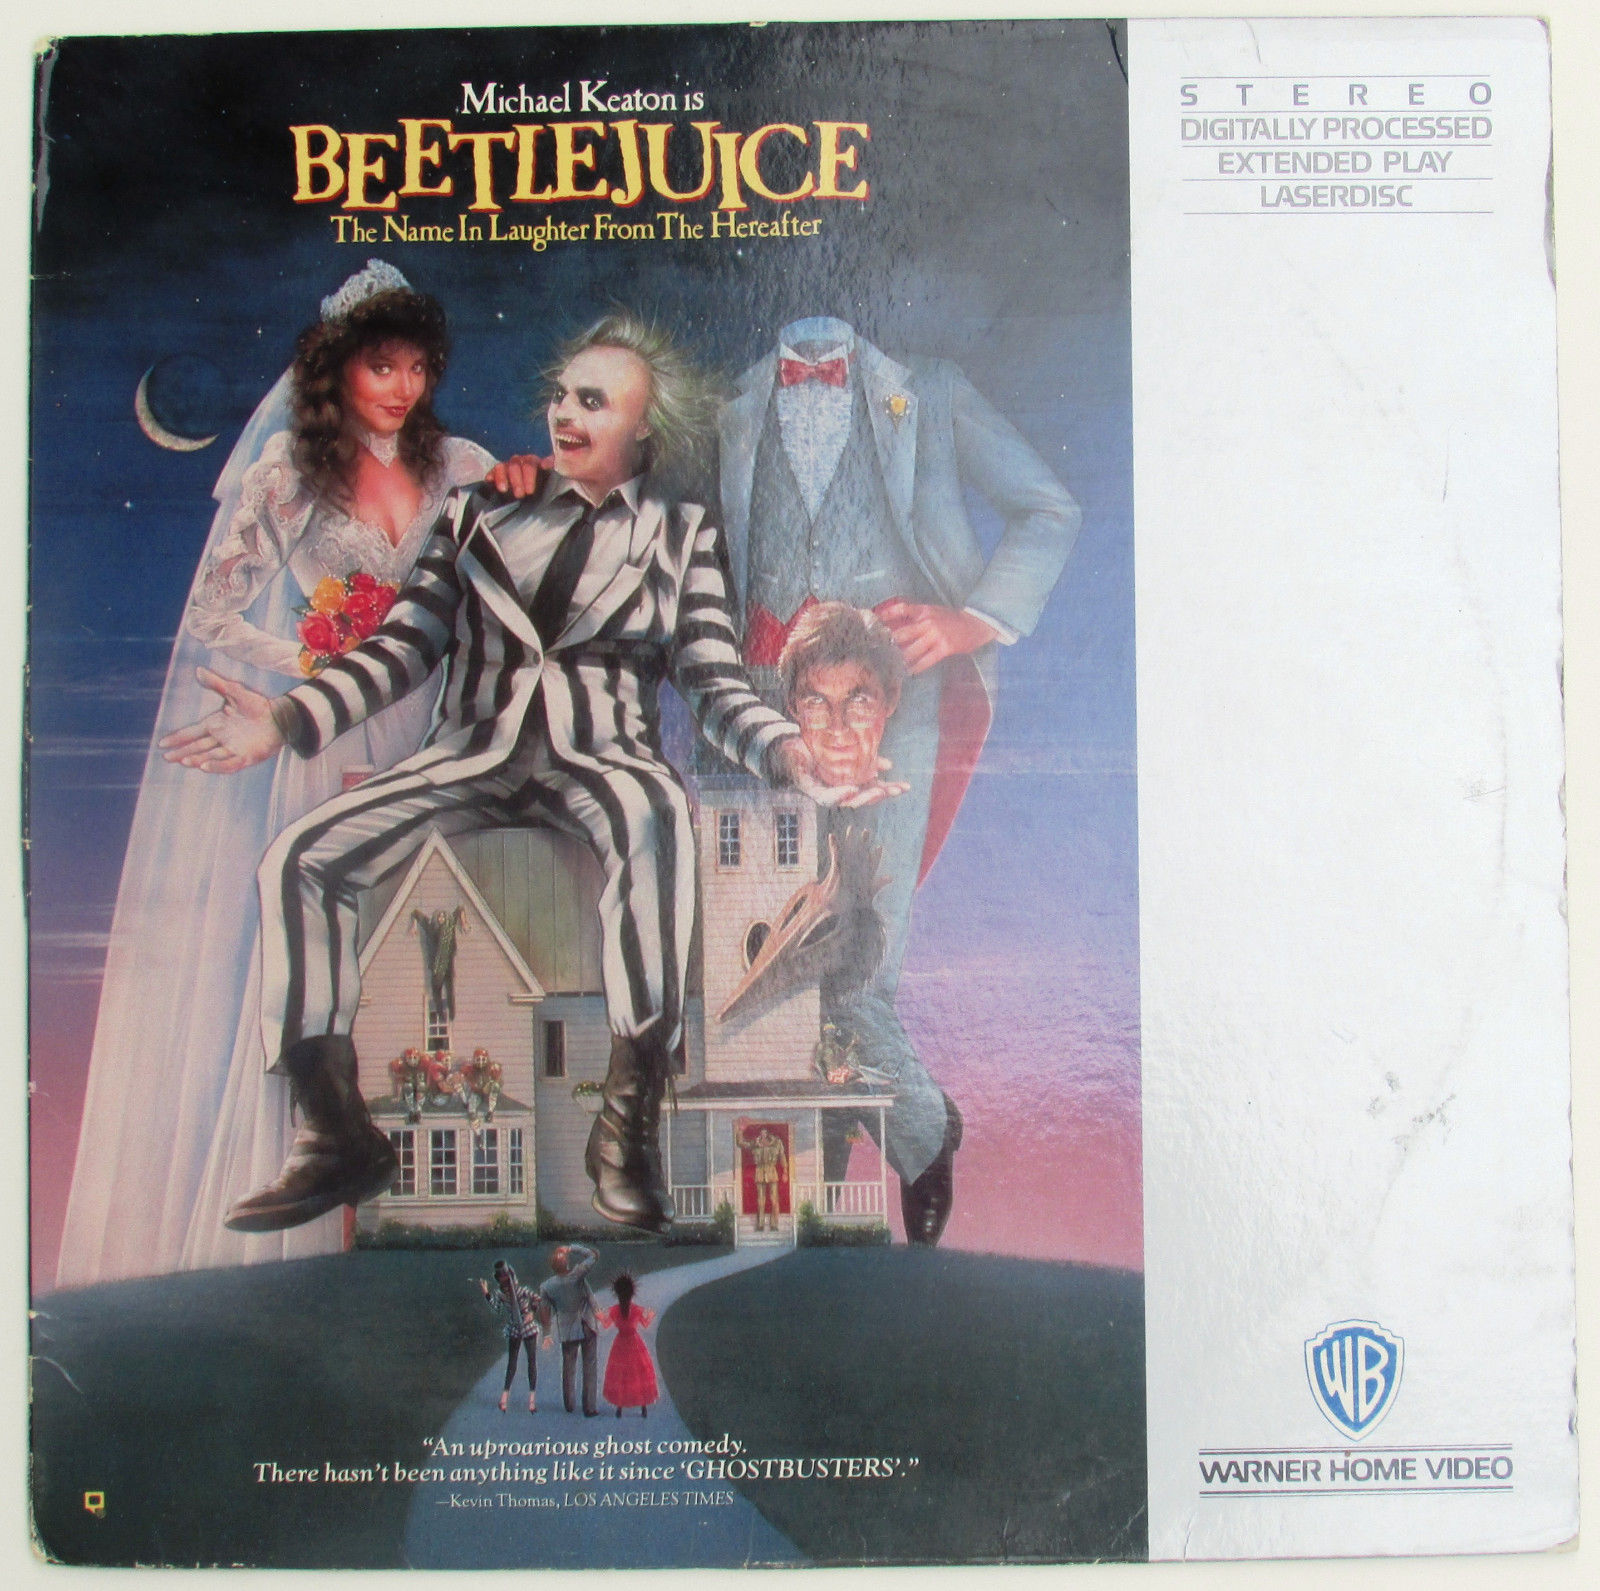 Beetlejuice on laserdisc michael keaton geena davis alec baldwin movie